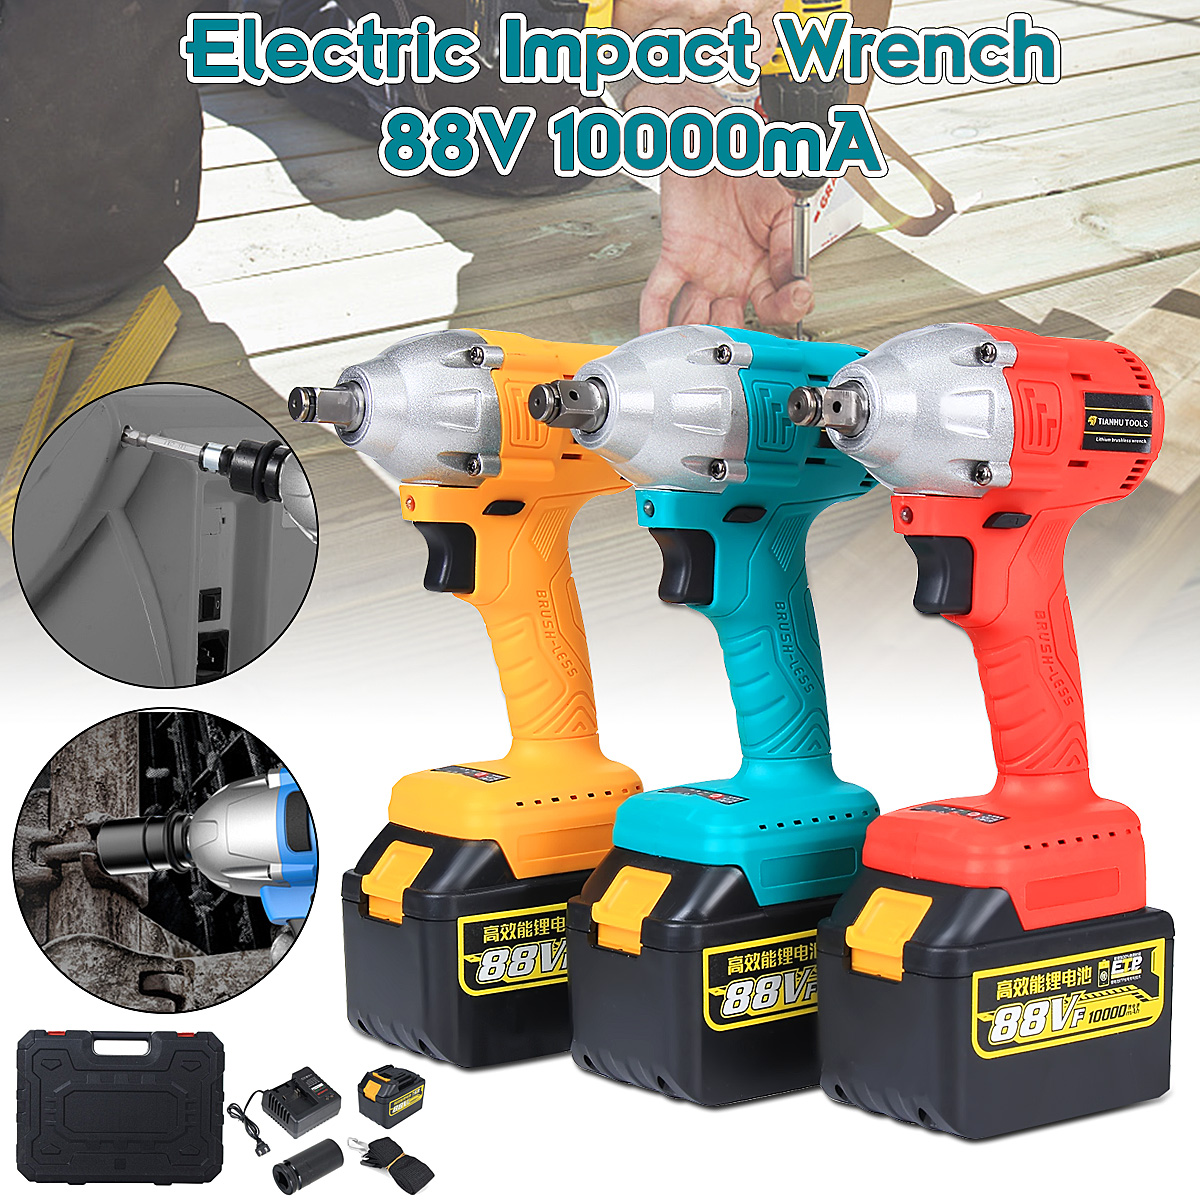 88v 10000mah 110v 220v Electric Wrench Lithium Ion Drive Brushless Cordless Impact 320nm Torque Tools In Wrenches From On